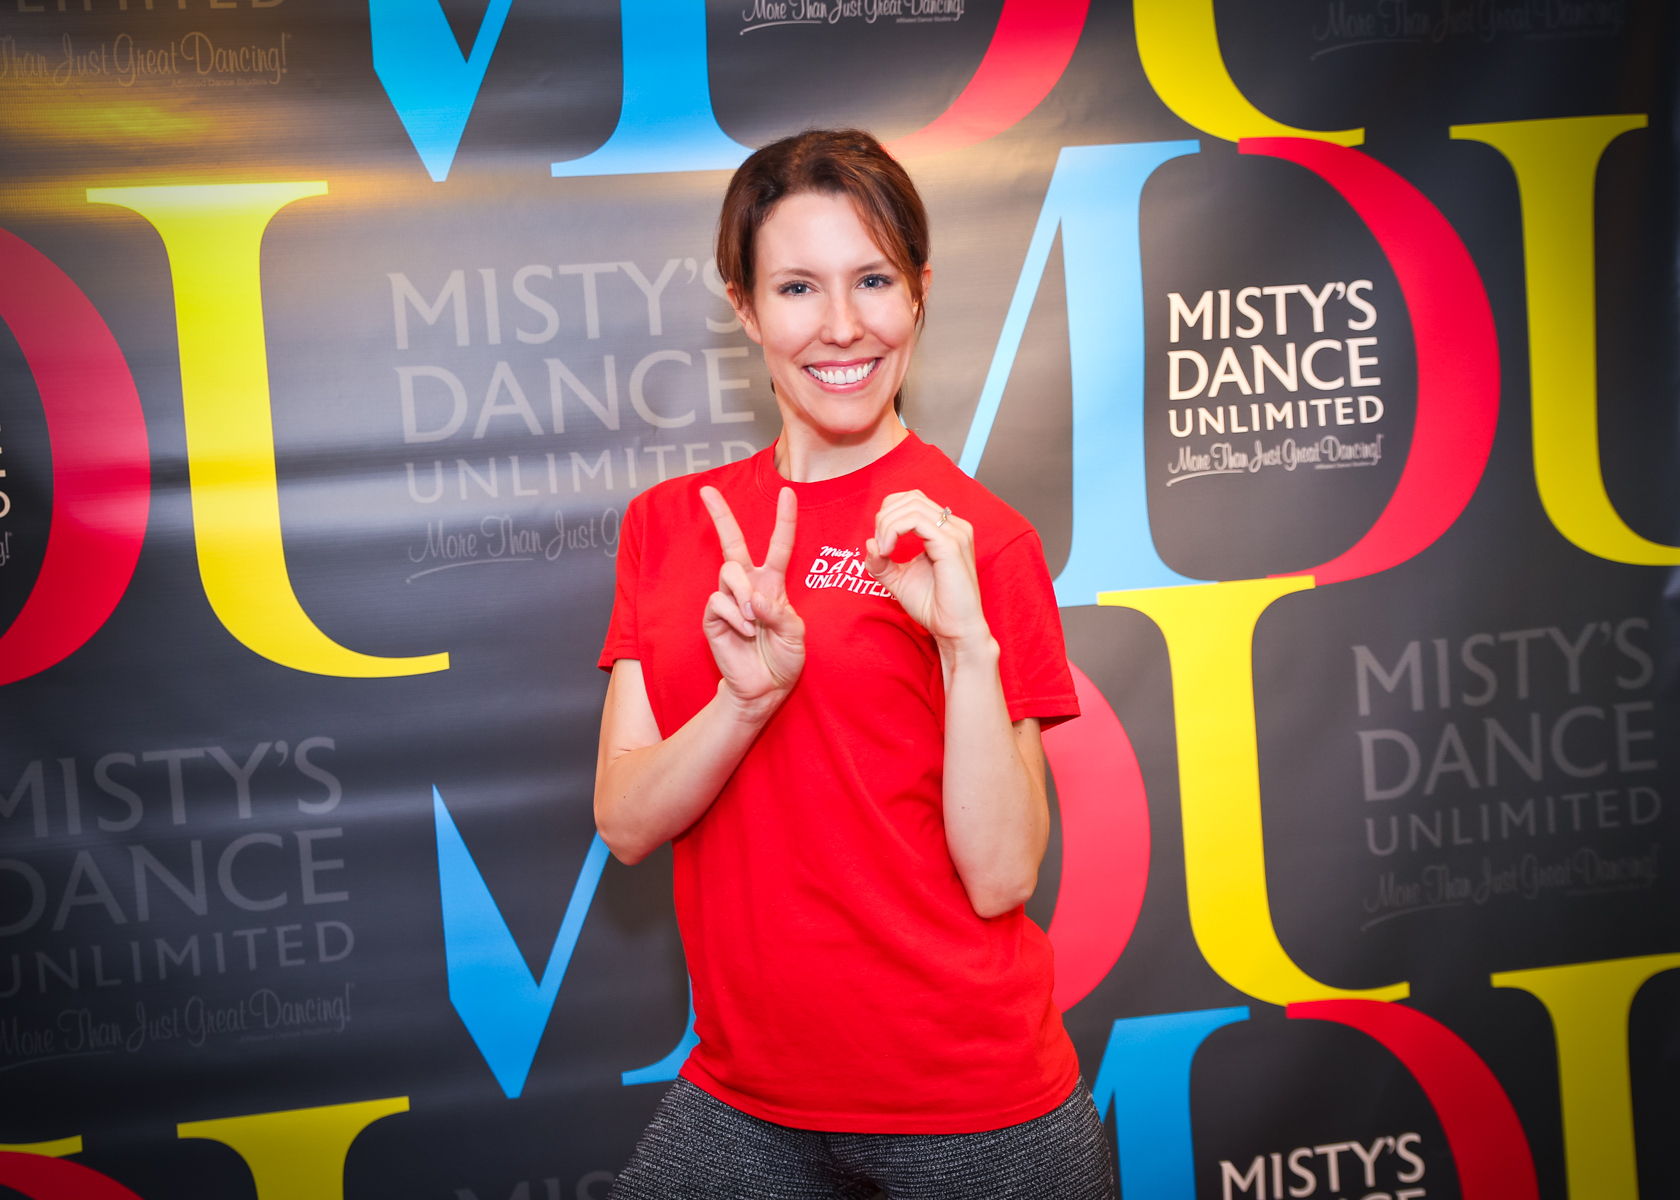 Misty Minute - More Than Just Great Dancing